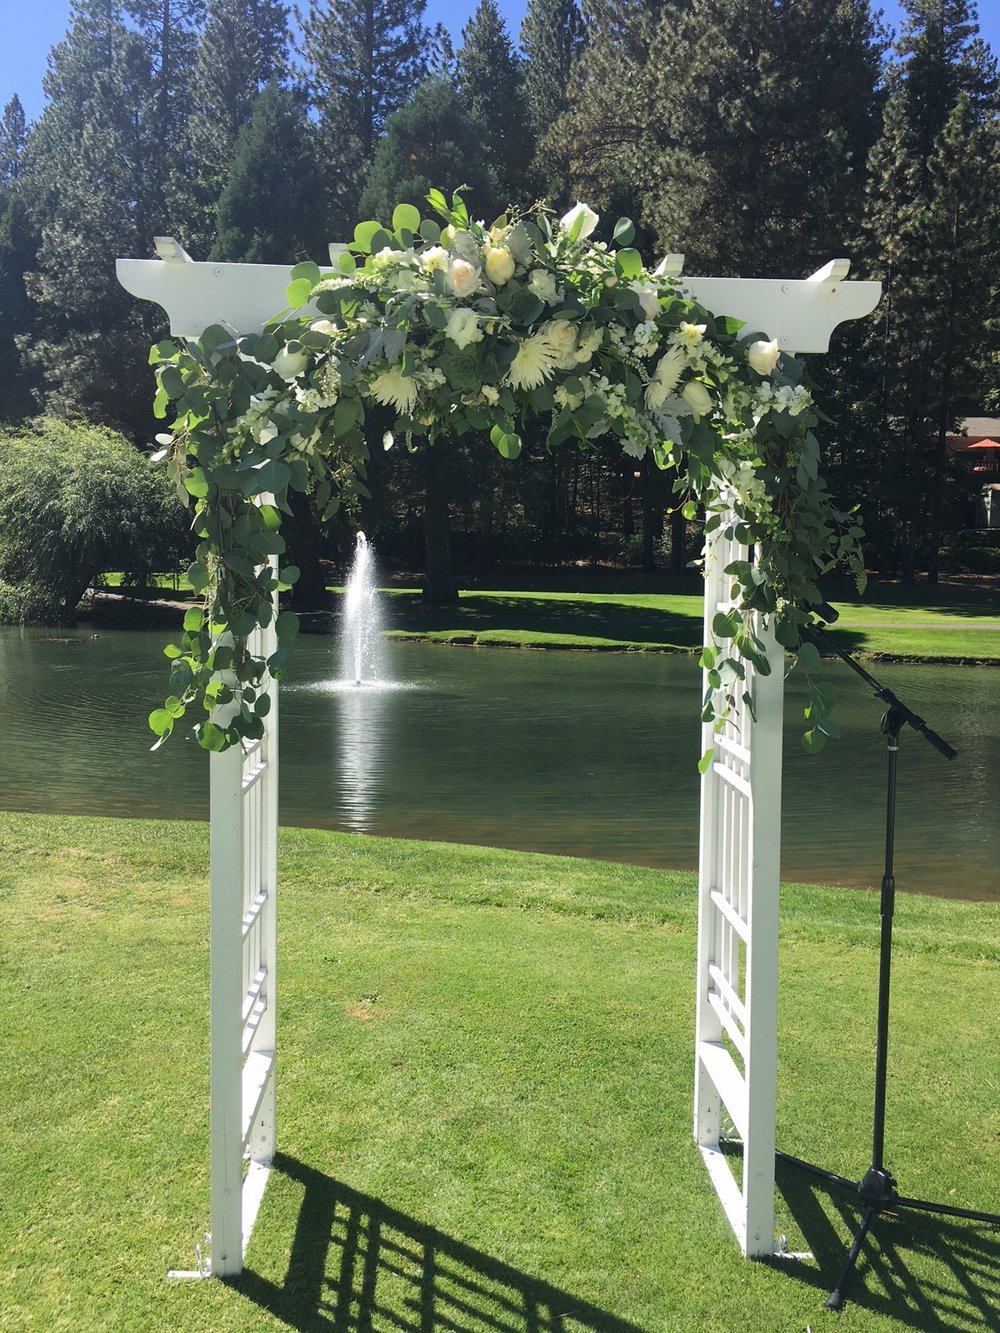 Wedding at Sequoia Woods - Arnold. Structure supplied by wedding party.